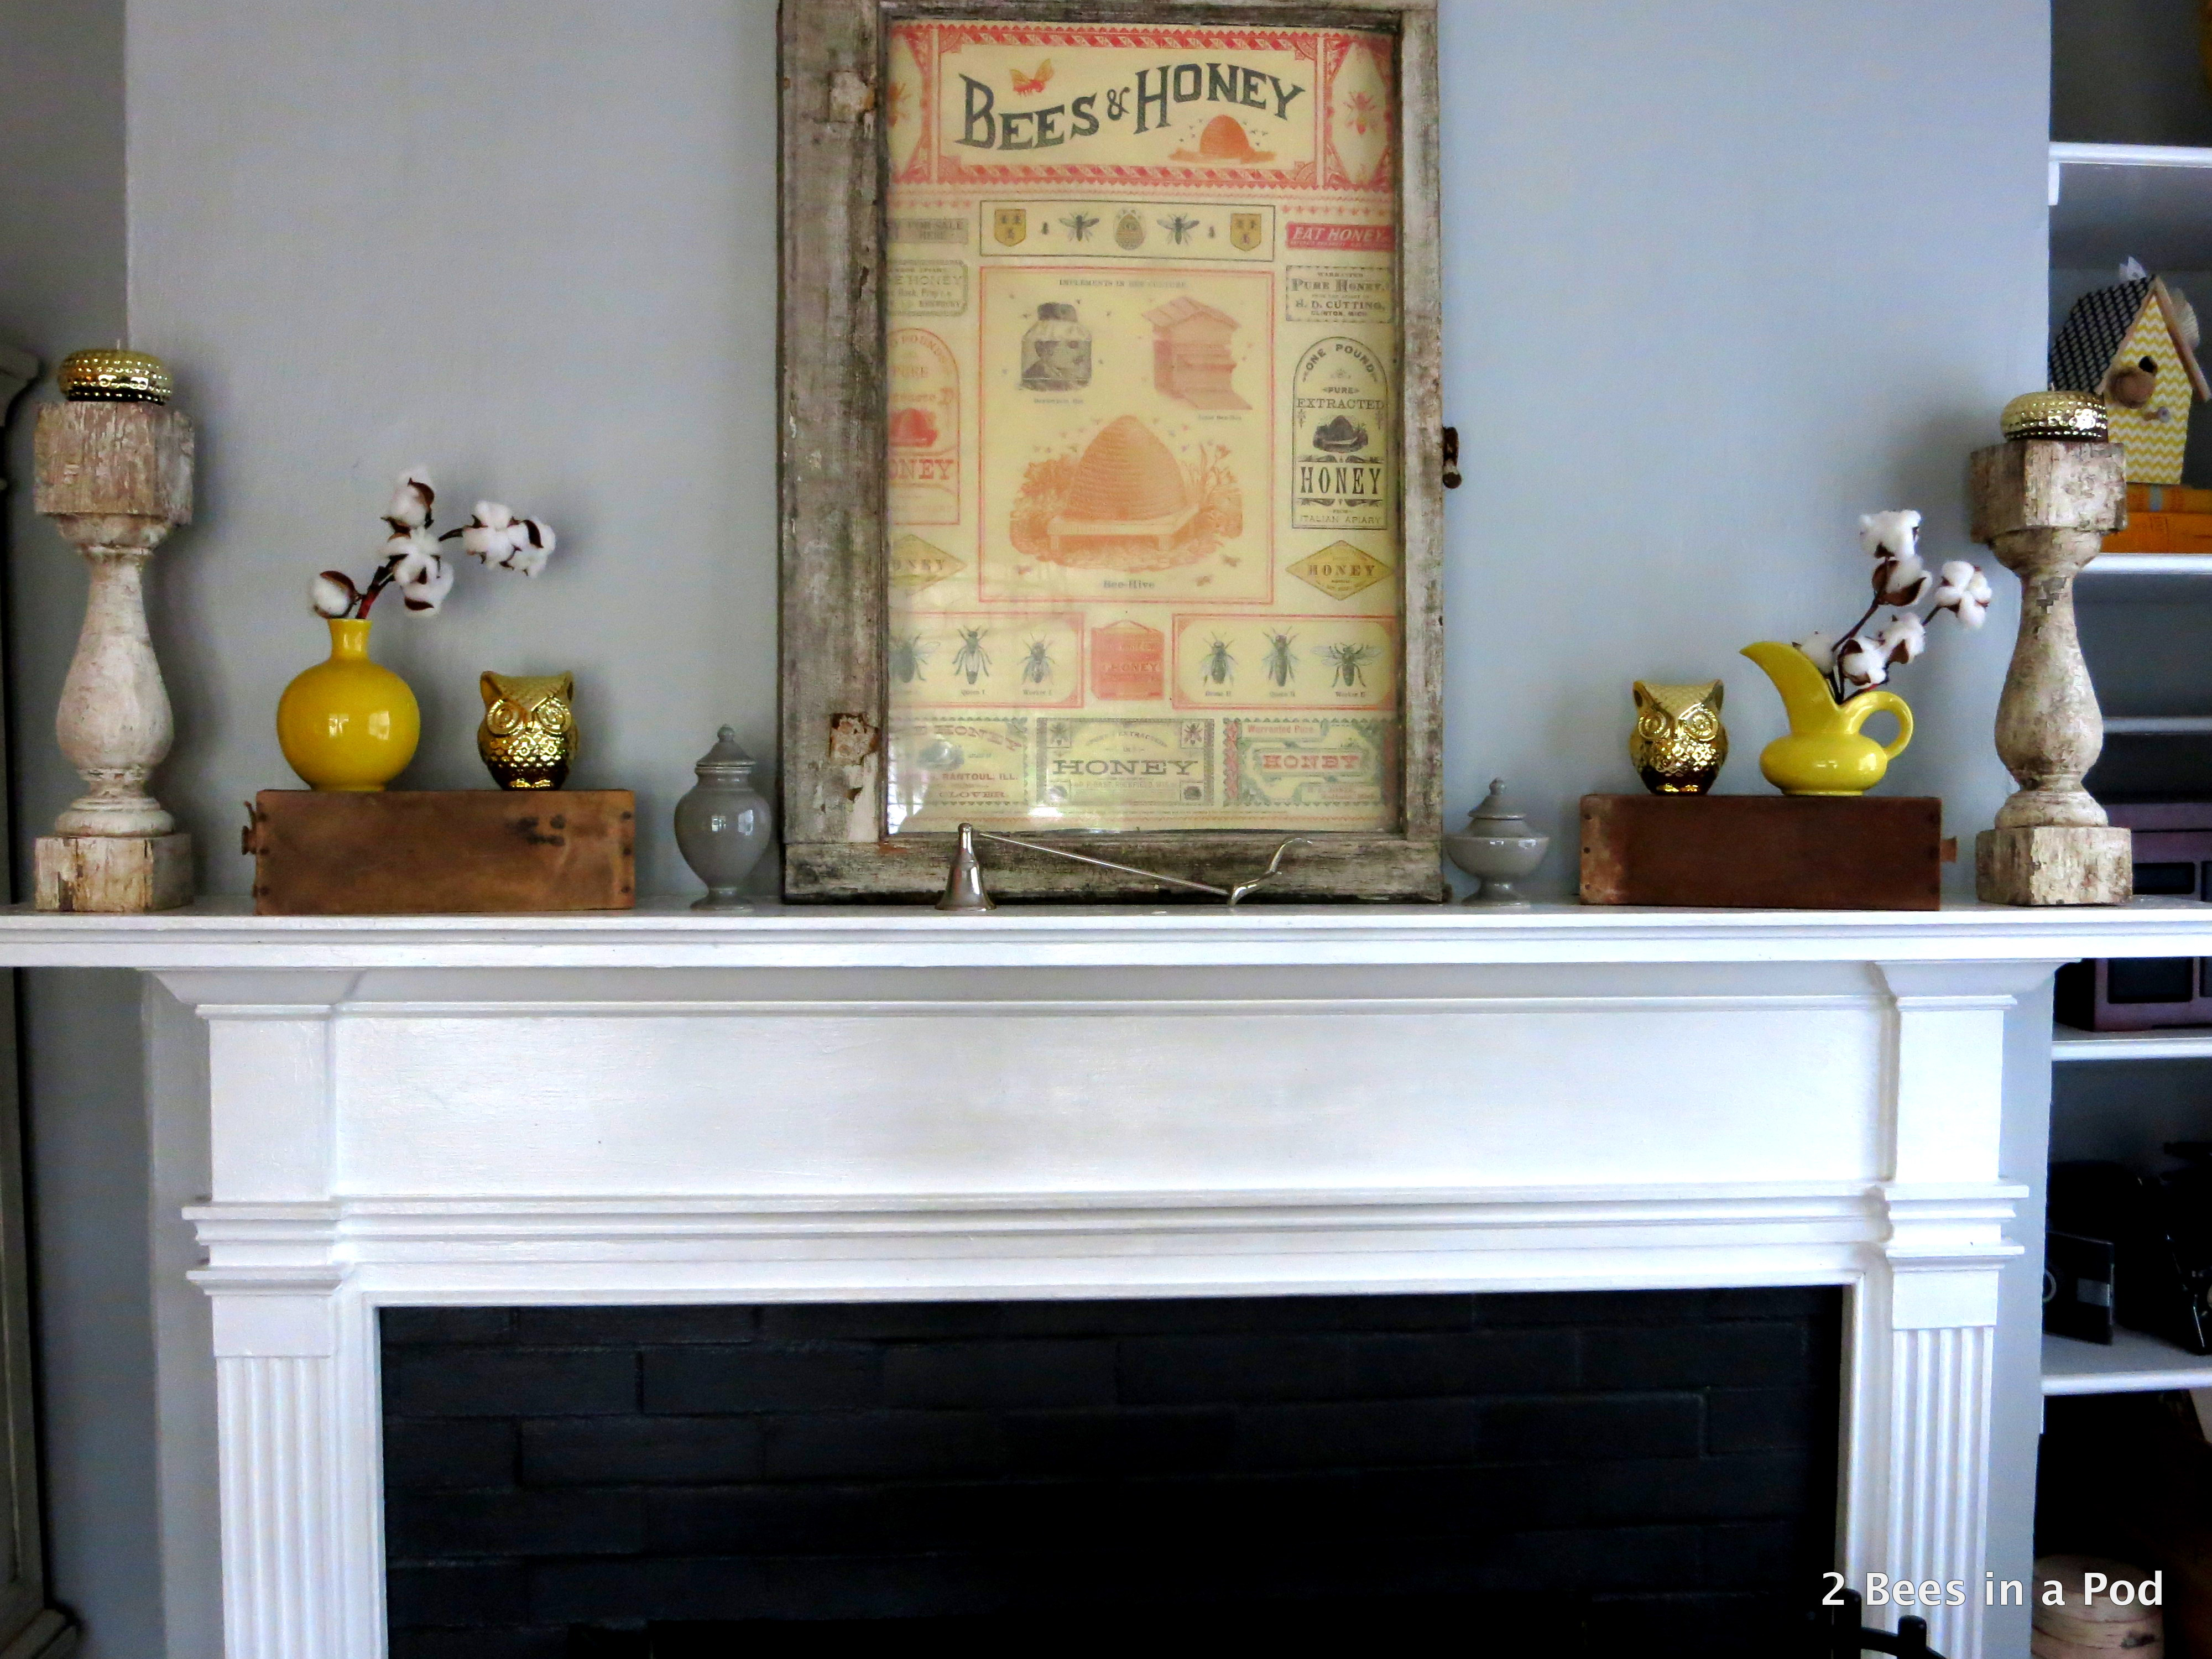 Rustic Mantel Refresh with cotton, owls, yellow vases, honey bee print, window.